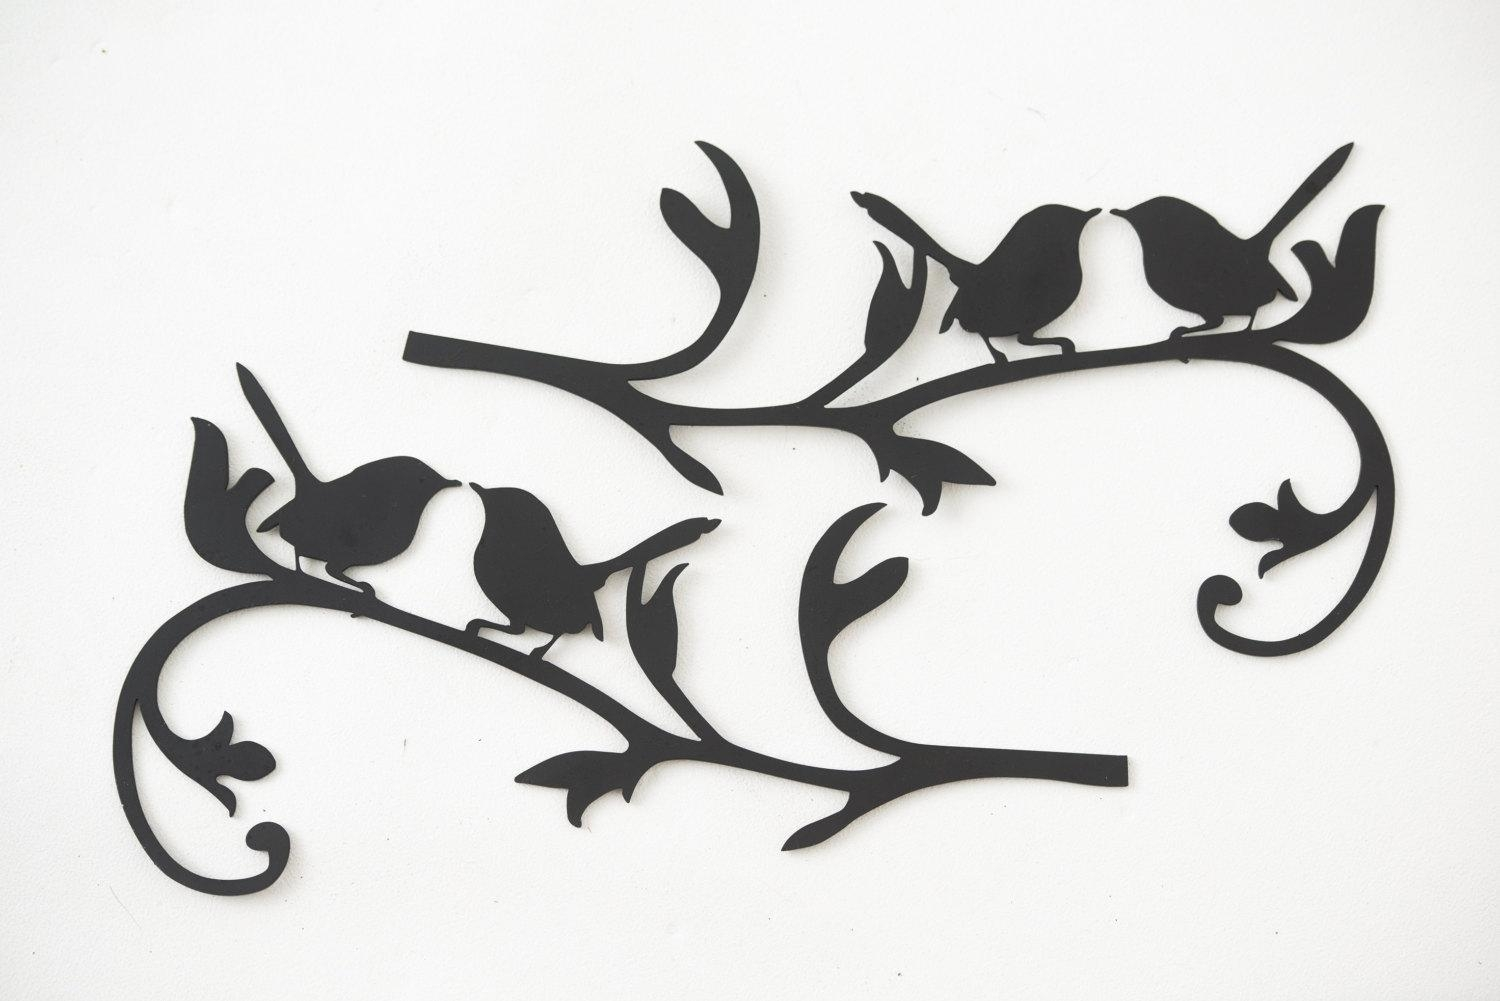 Wall Art Designs: Metal Bird Wall Art Hand Drawn And Laser Cut With Metal Flying Birds Wall Art (Image 11 of 20)